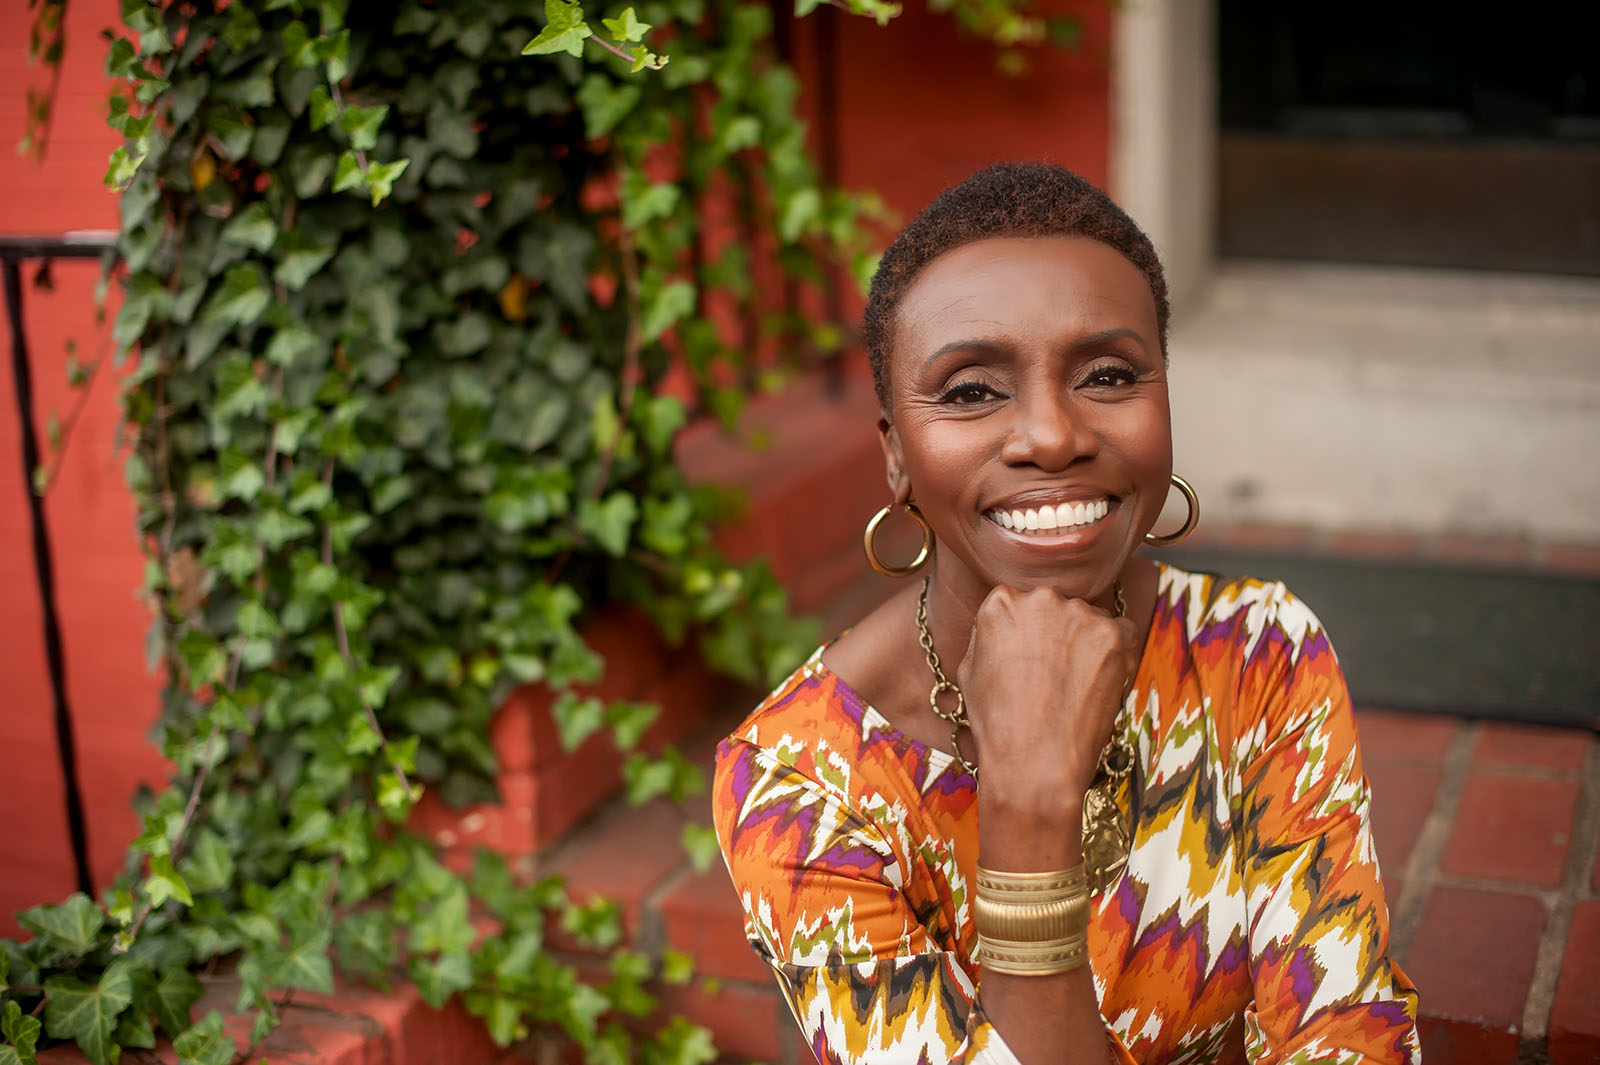 Lifestyle business portrait of Black woman at her front door